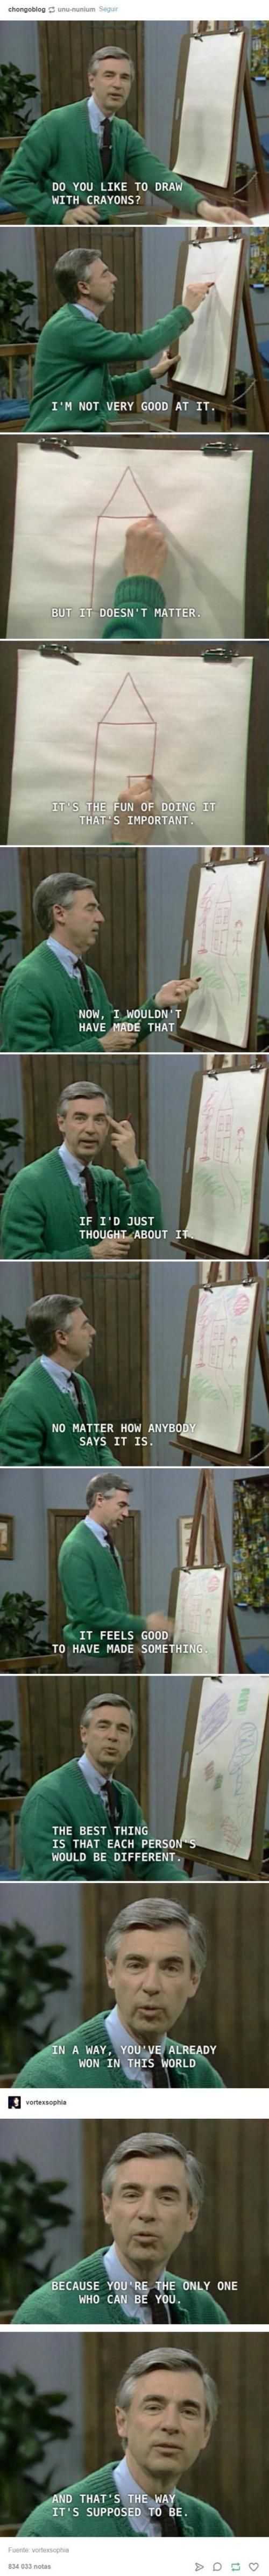 Wholesome Mr. Rogers